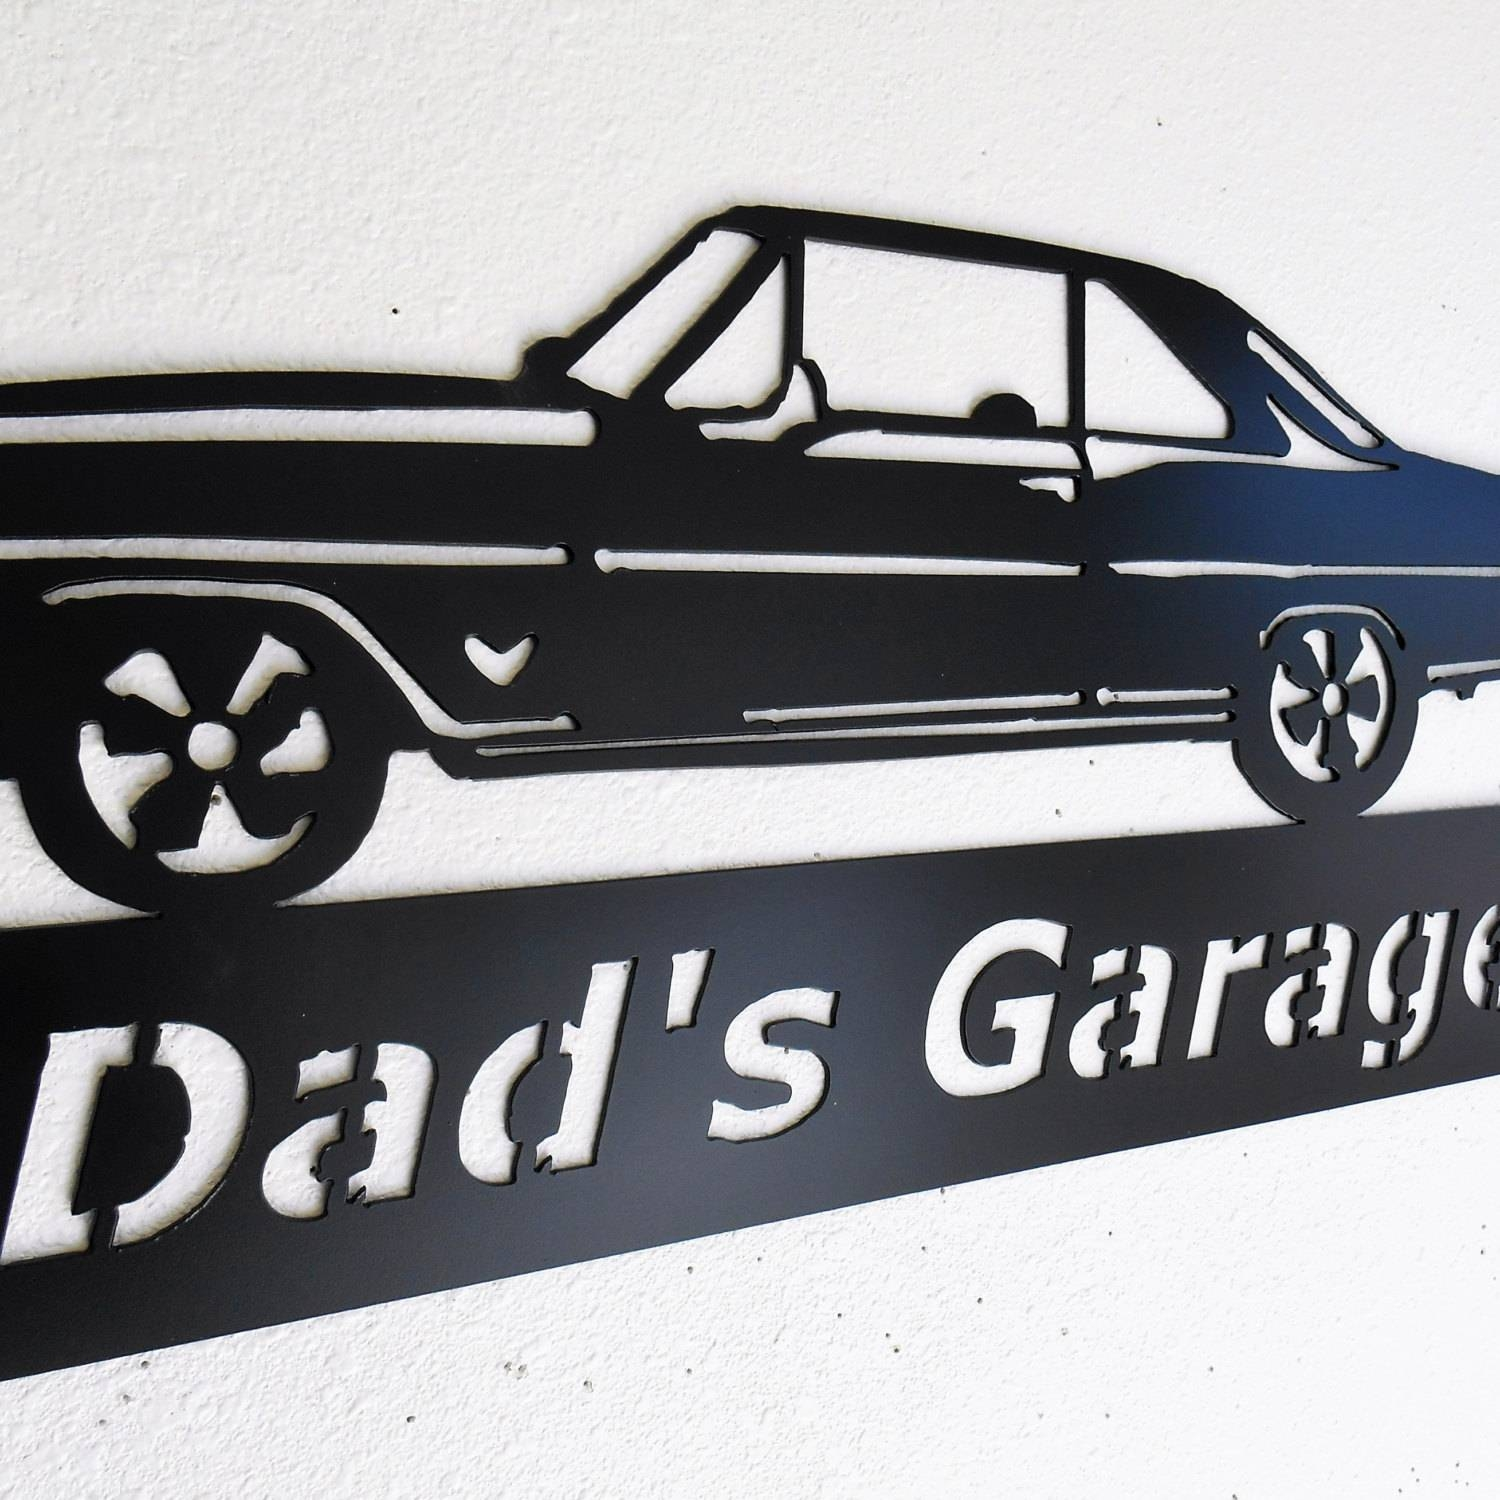 Mesmerizing Wall Decor Man Cave Garage Wall Garage Door Wall Art Pertaining To Most Up To Date Car Metal Wall Art (View 8 of 20)